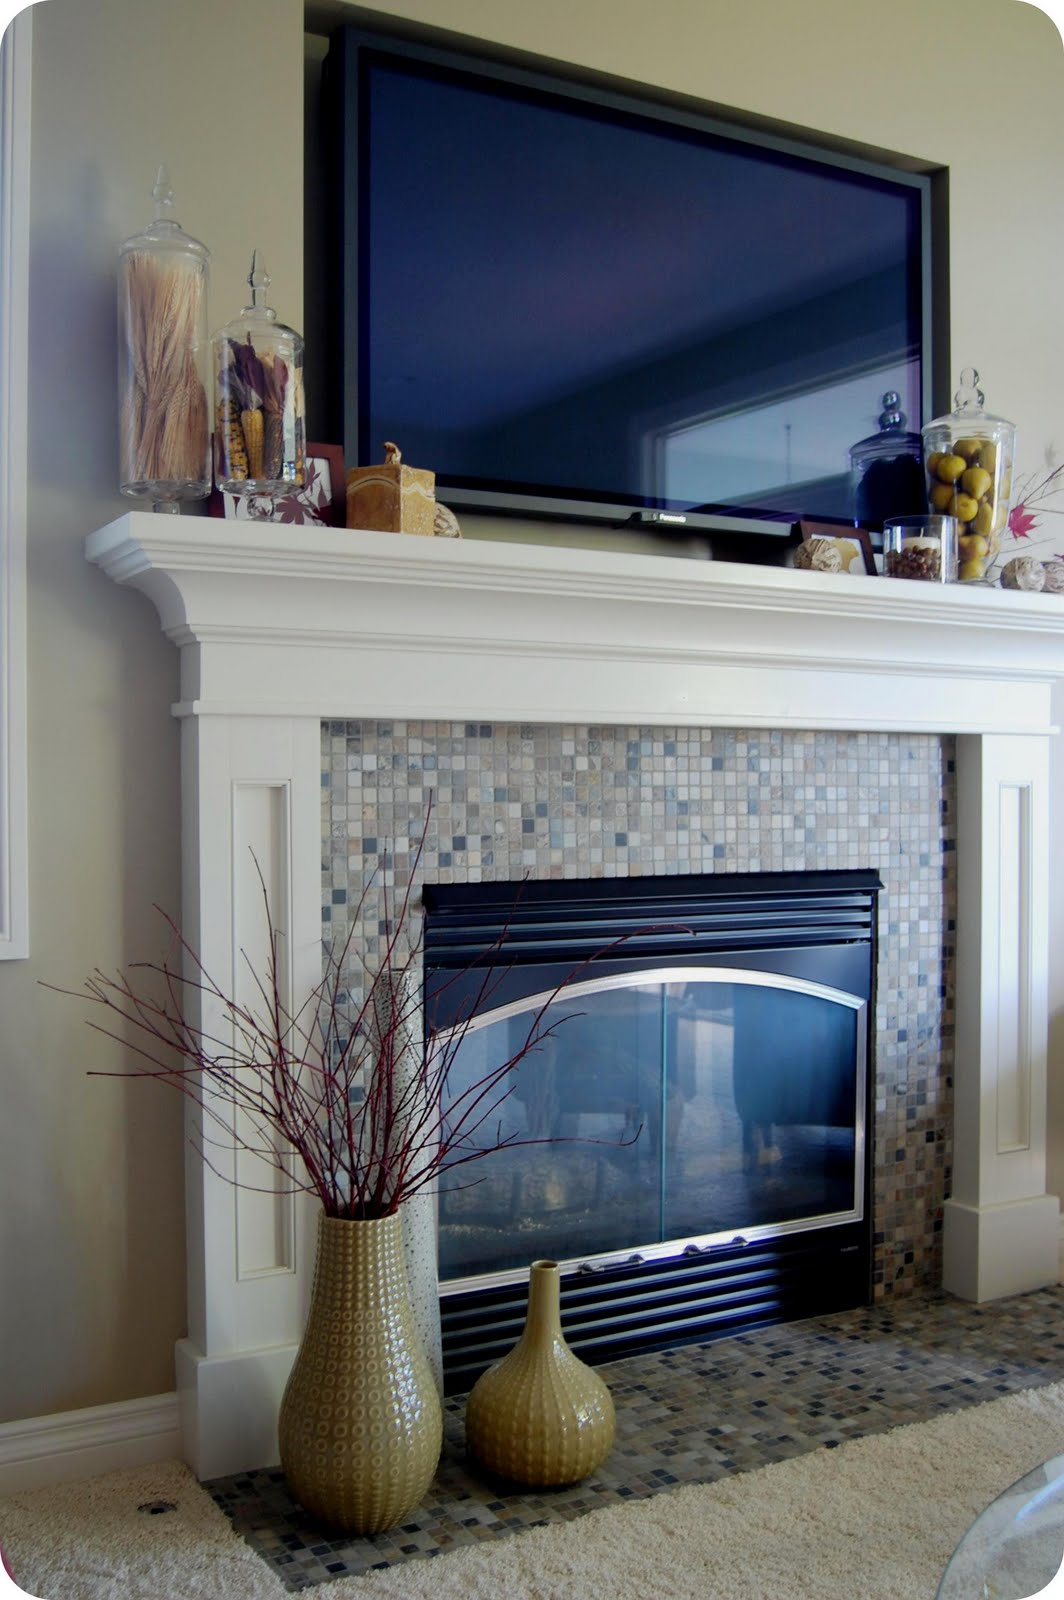 How to decorate a fireplace mantel with a tv fireplace for How to design a fireplace mantel